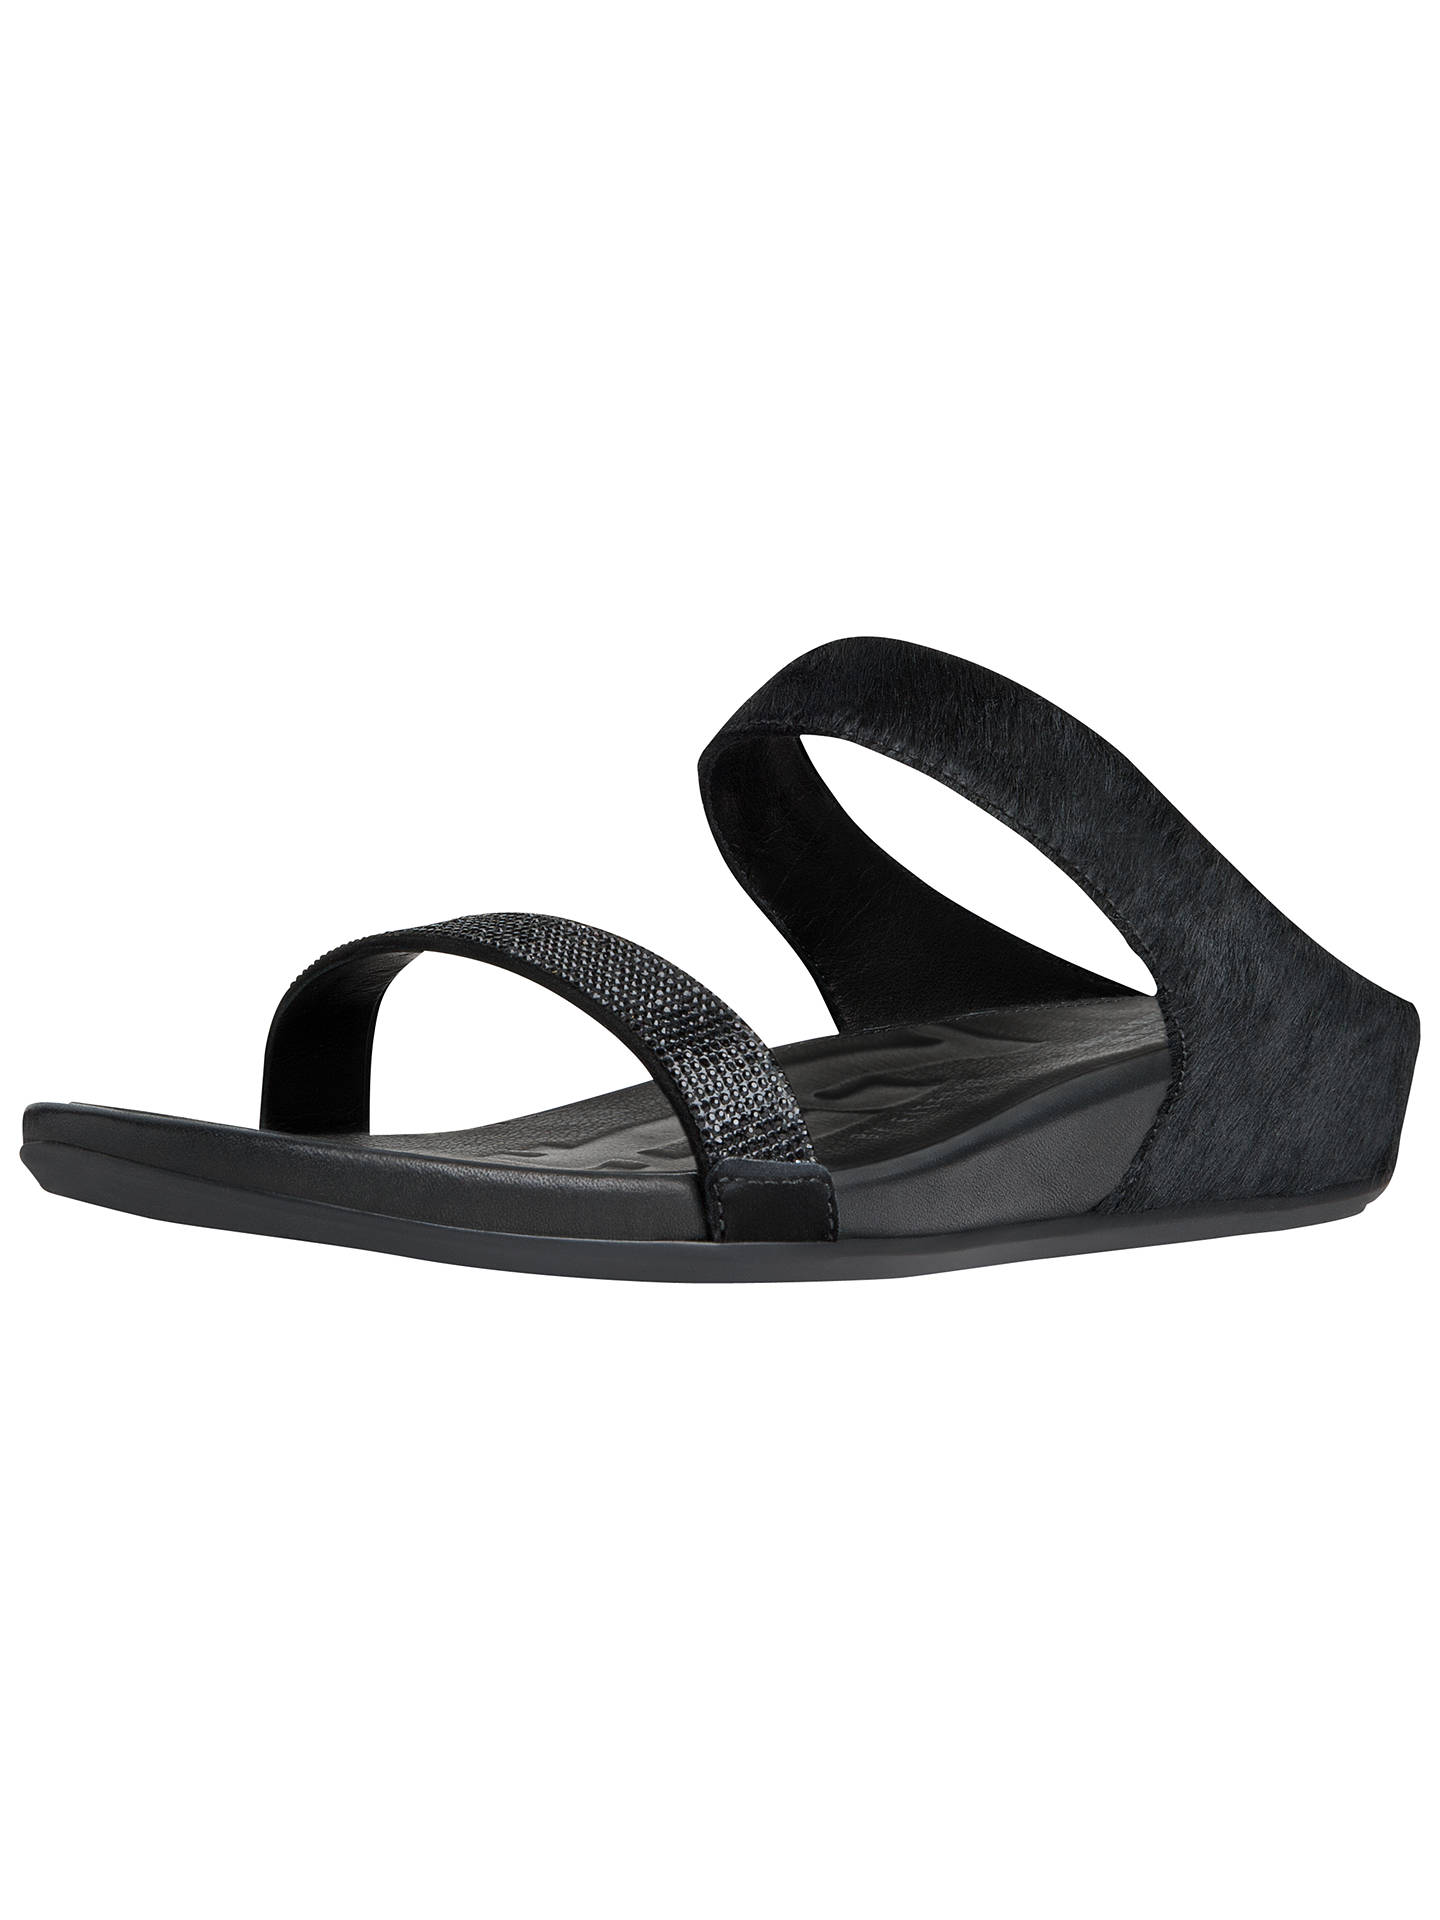 c5d4633d9bb Buy Fitflop Banda Crystal Wedge Heeled Leather Sandals